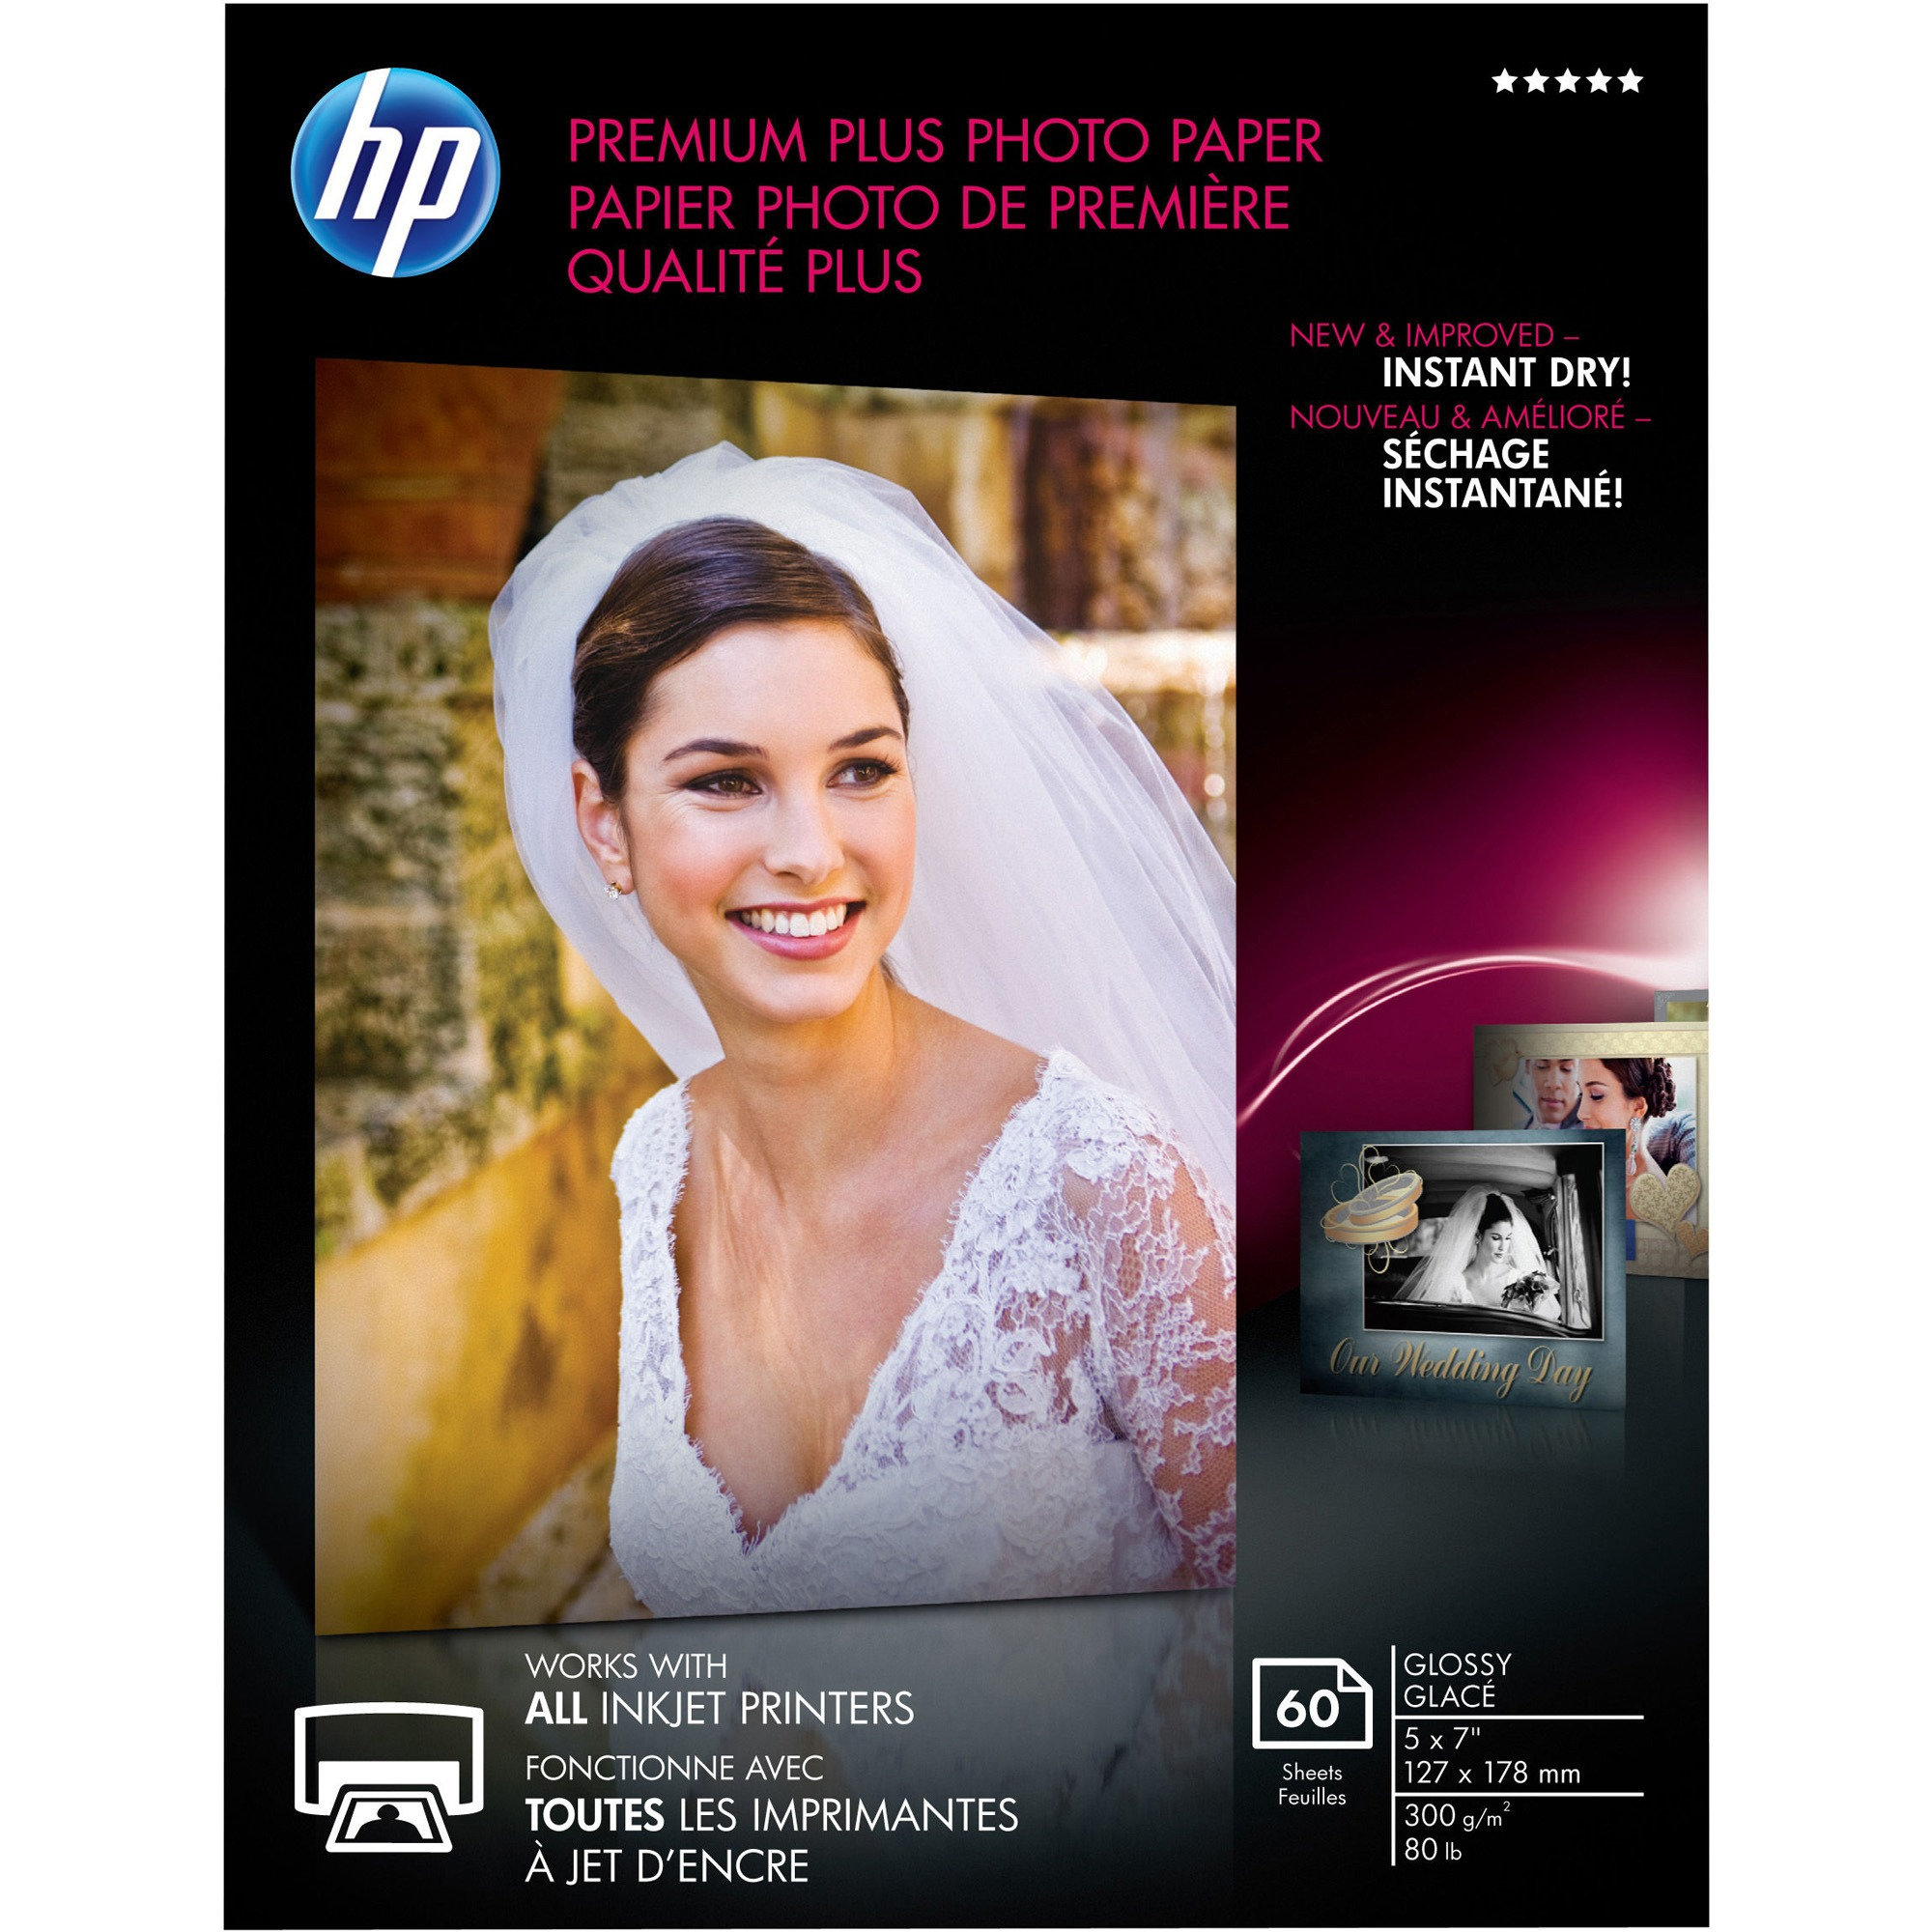 HP, HEWCR669A, Premium Plus 5x7 Photo Paper, 60 / Pack, White